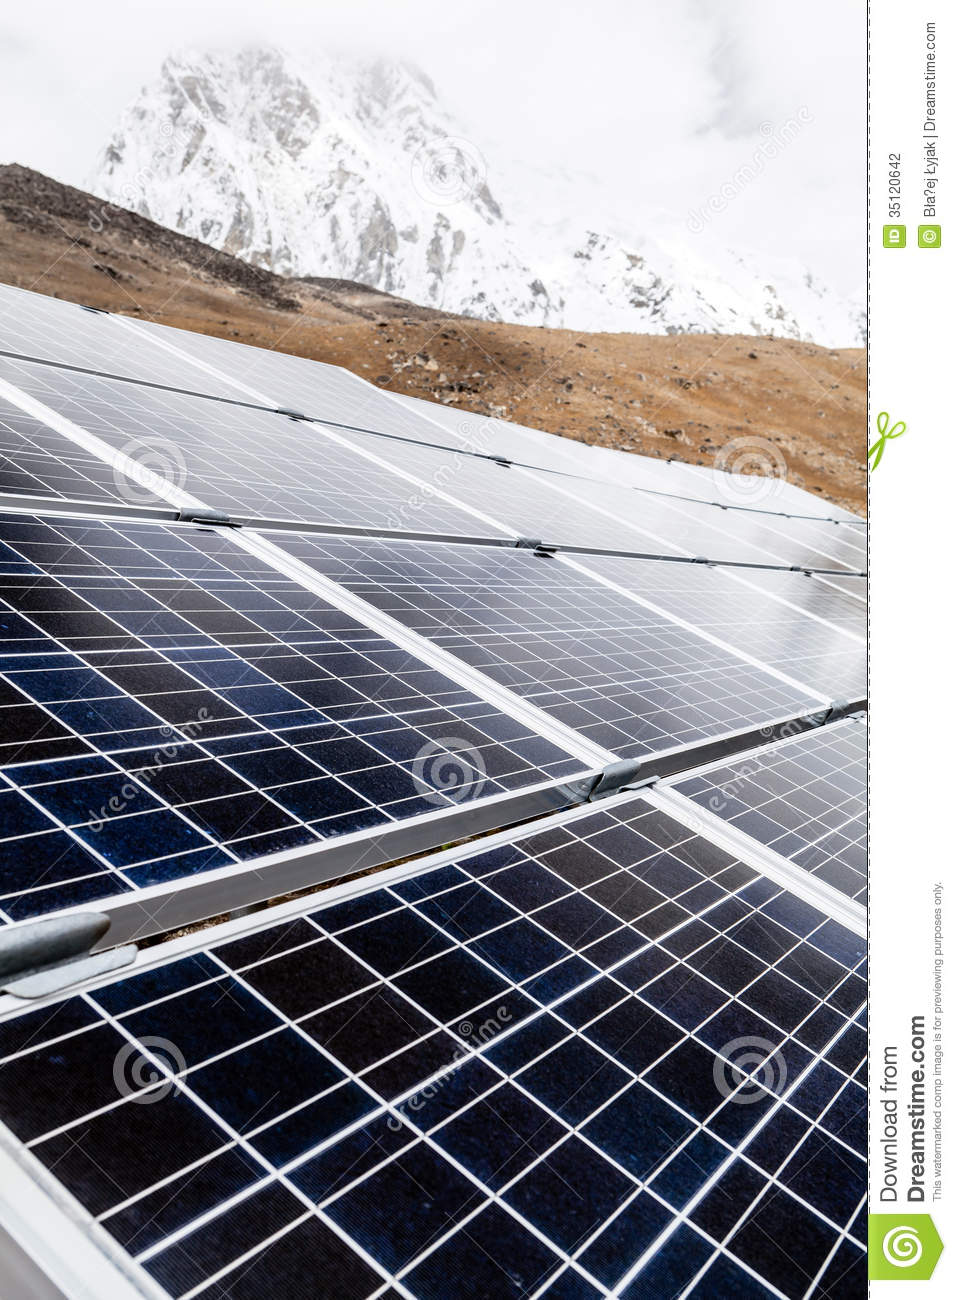 how to start solar power plant business